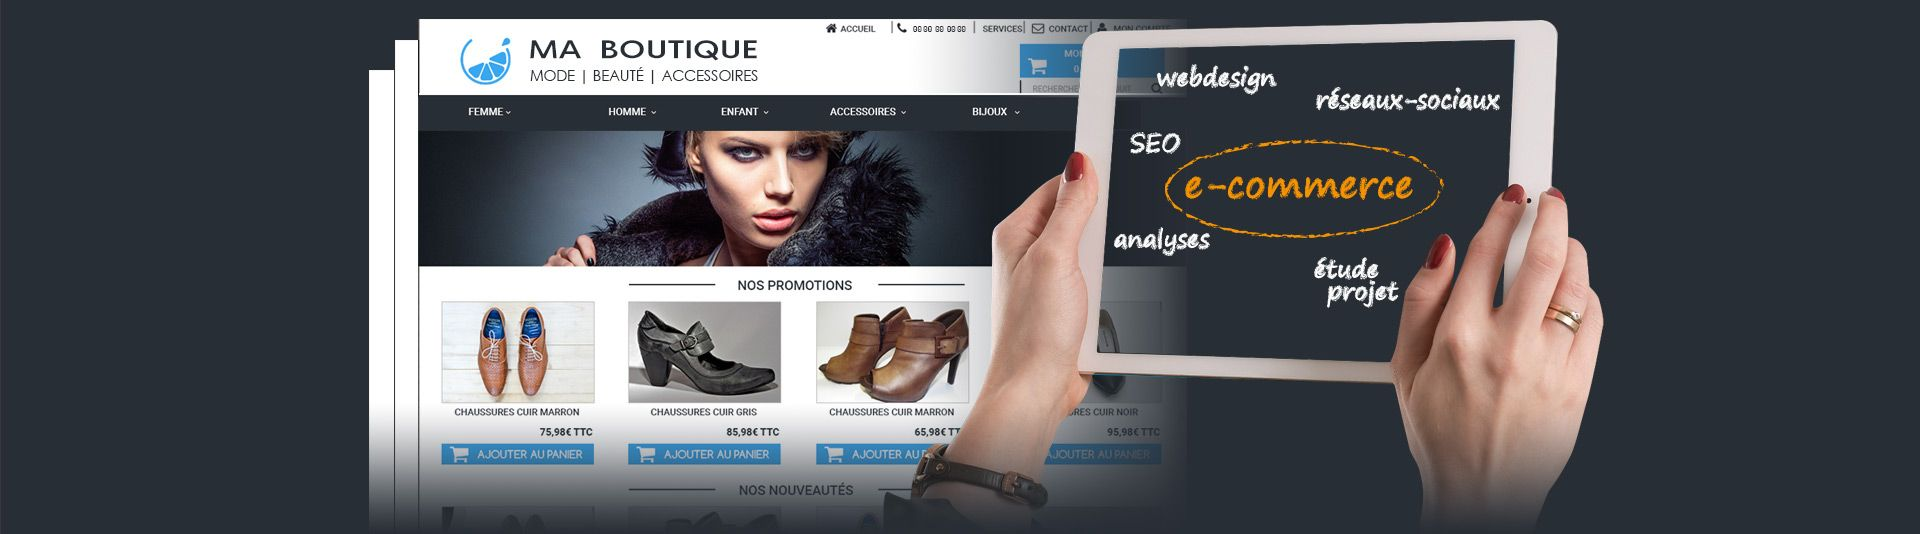 TOROPSHOP, solution boutique en ligne-d25f31